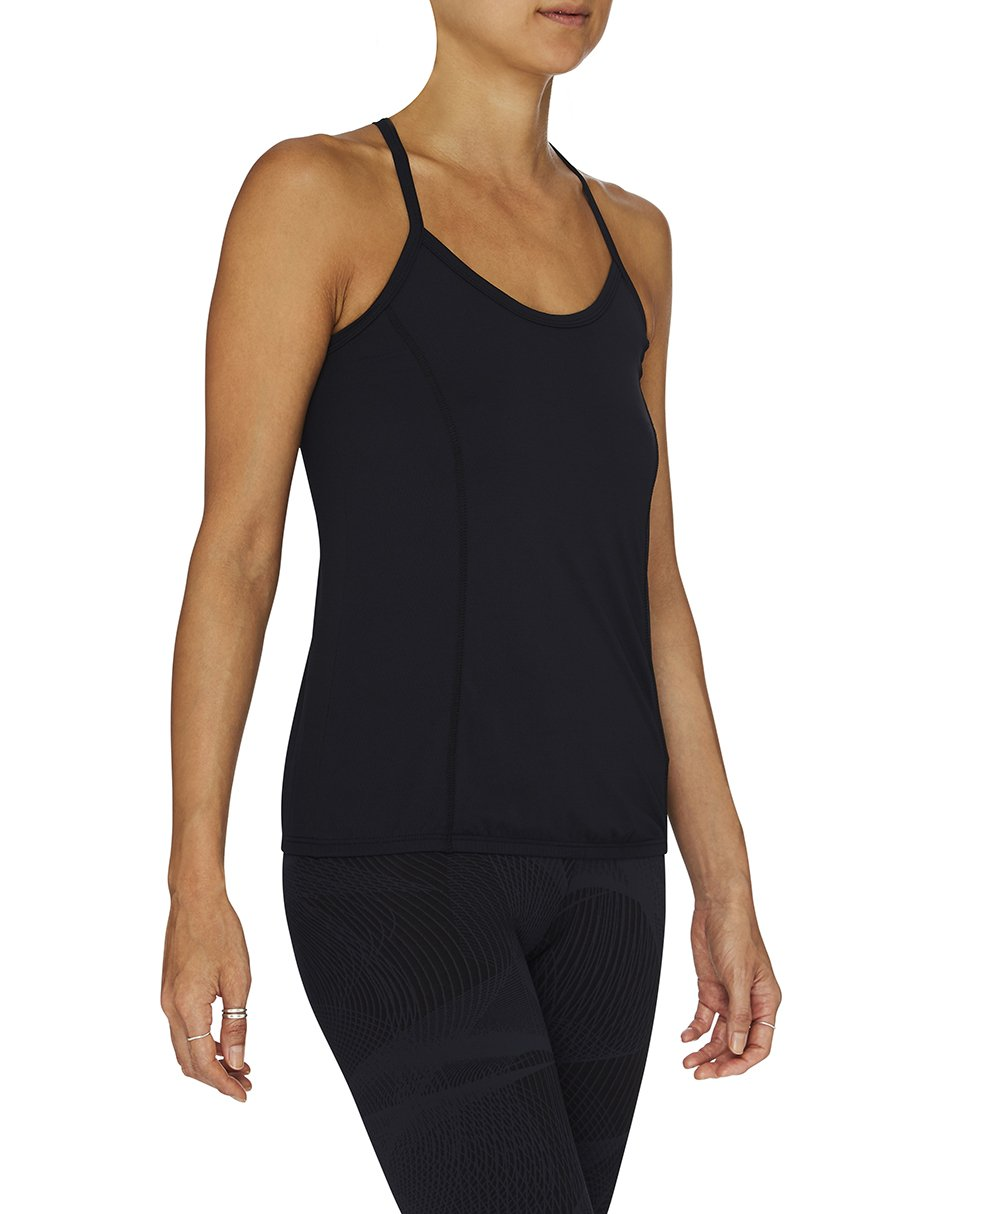 Juliana Black Singlet